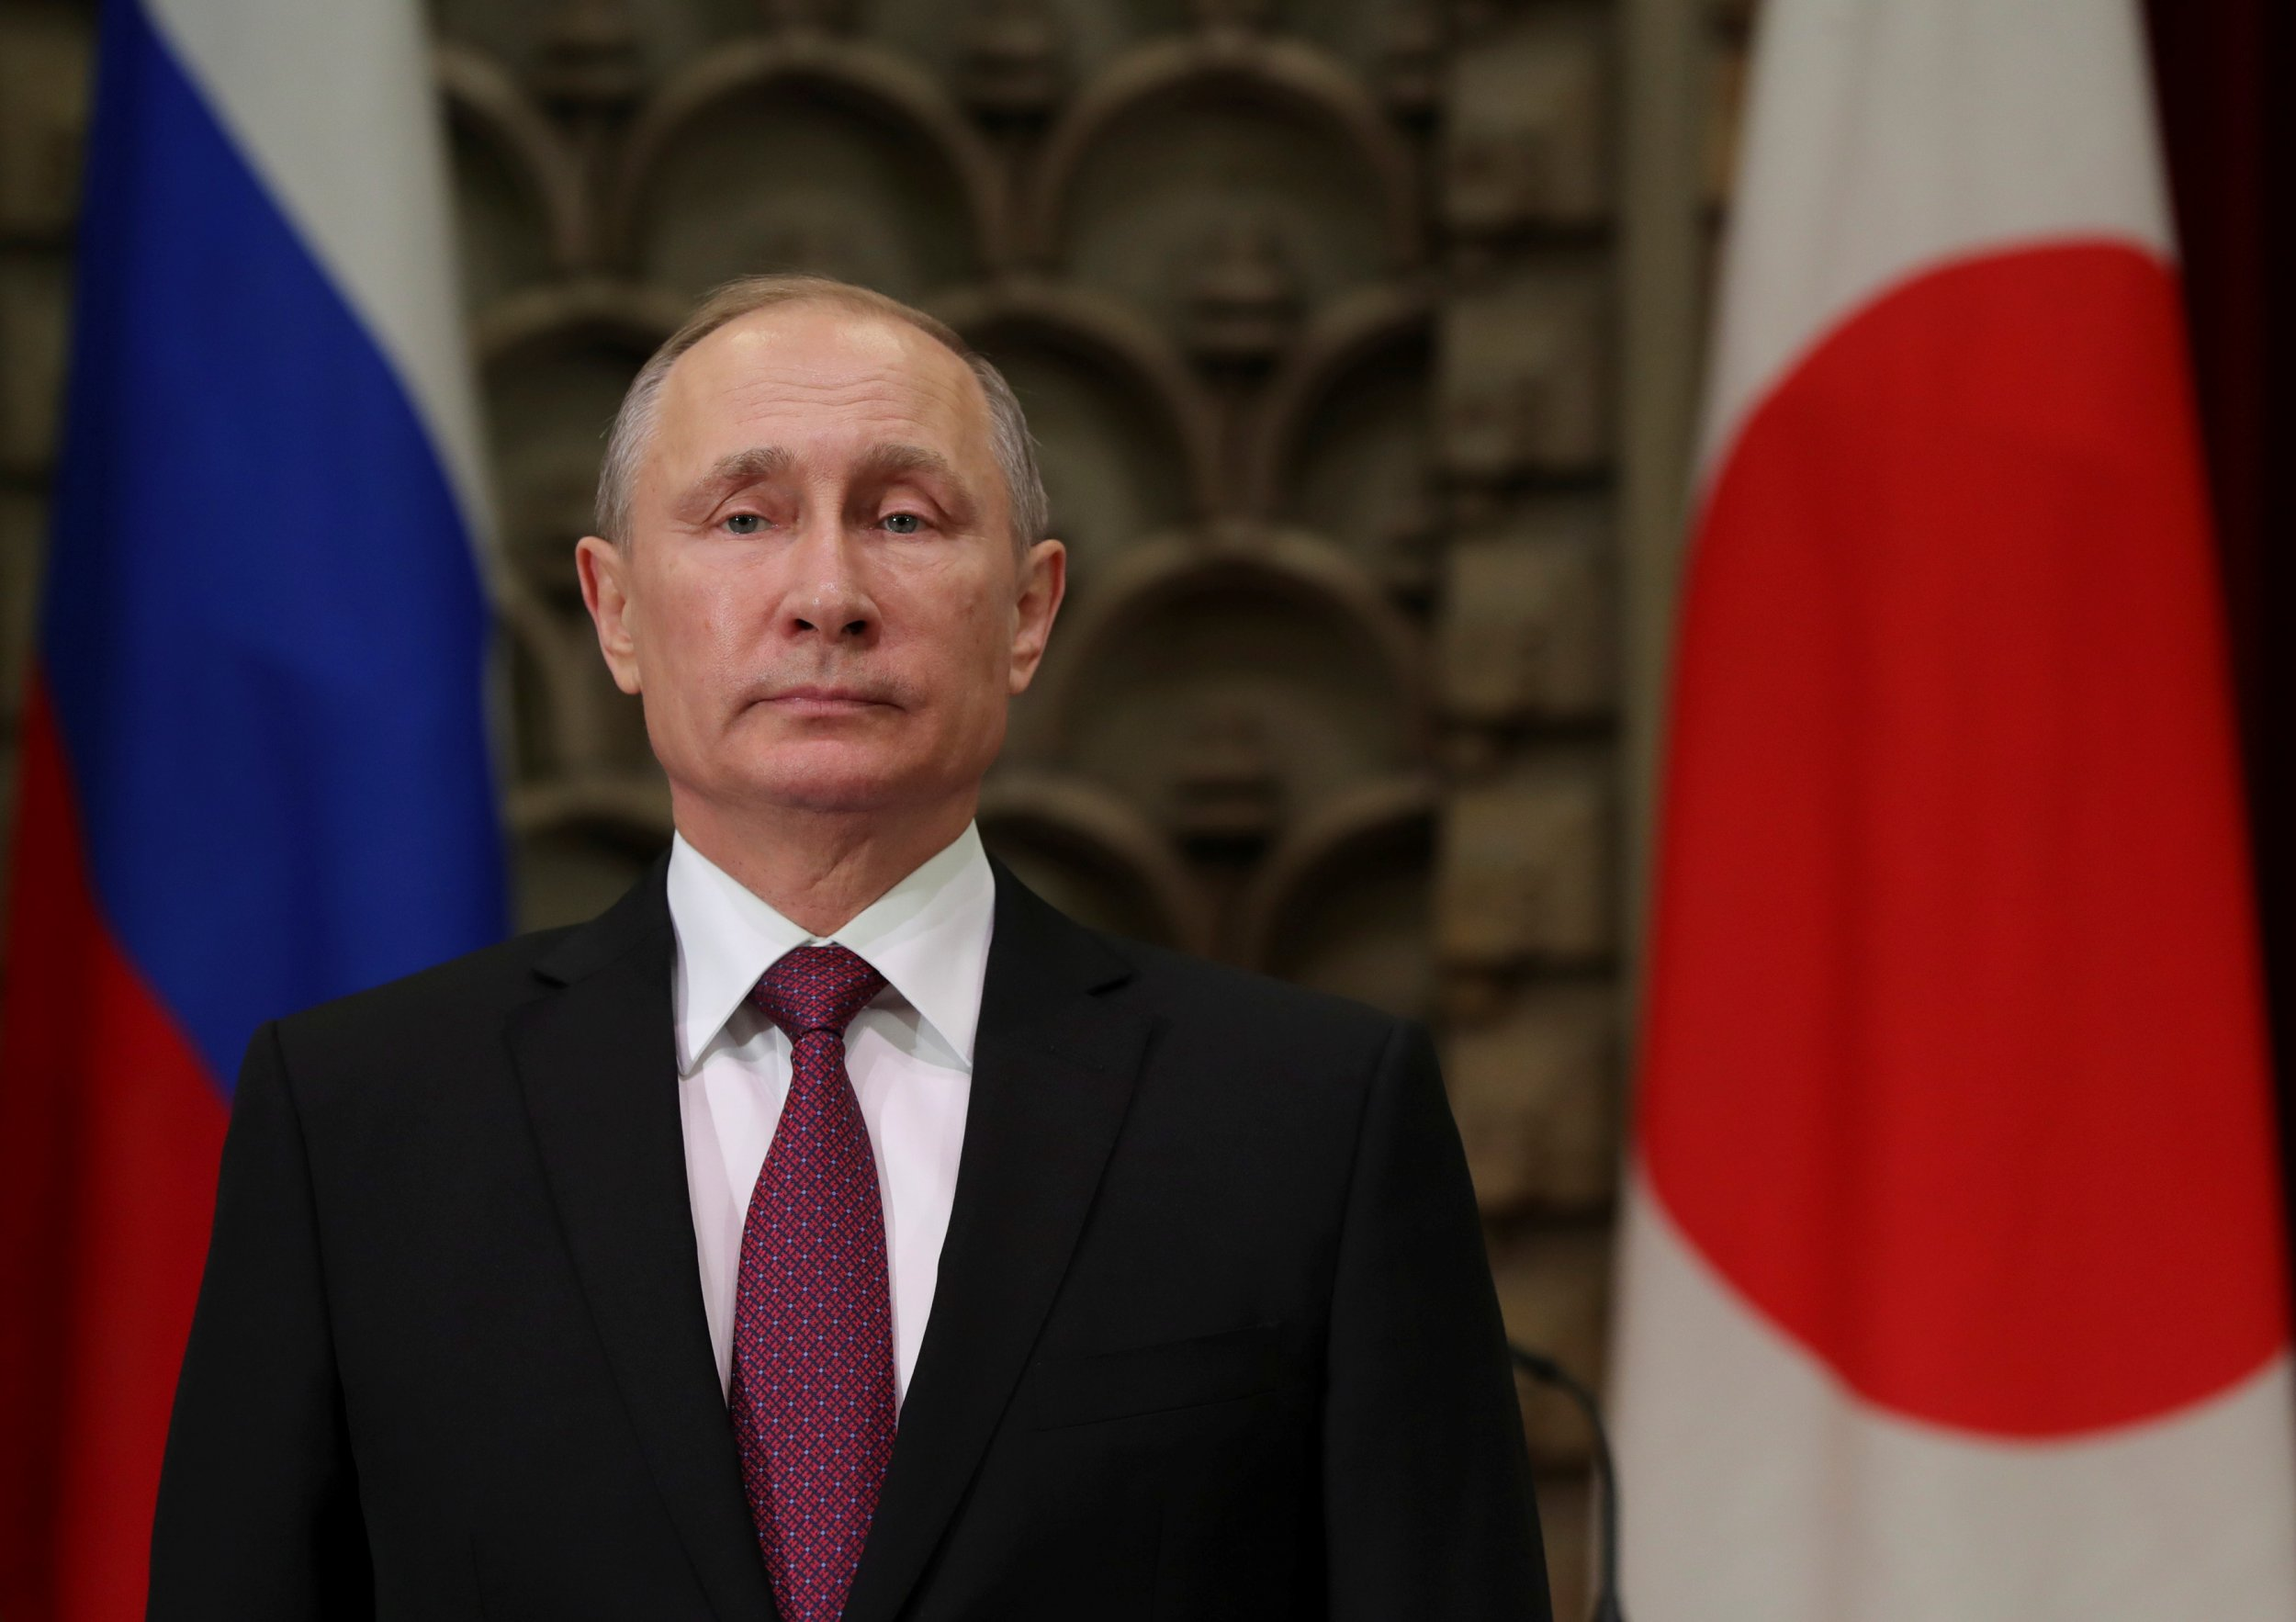 Japan and Russia: The War That Won't End